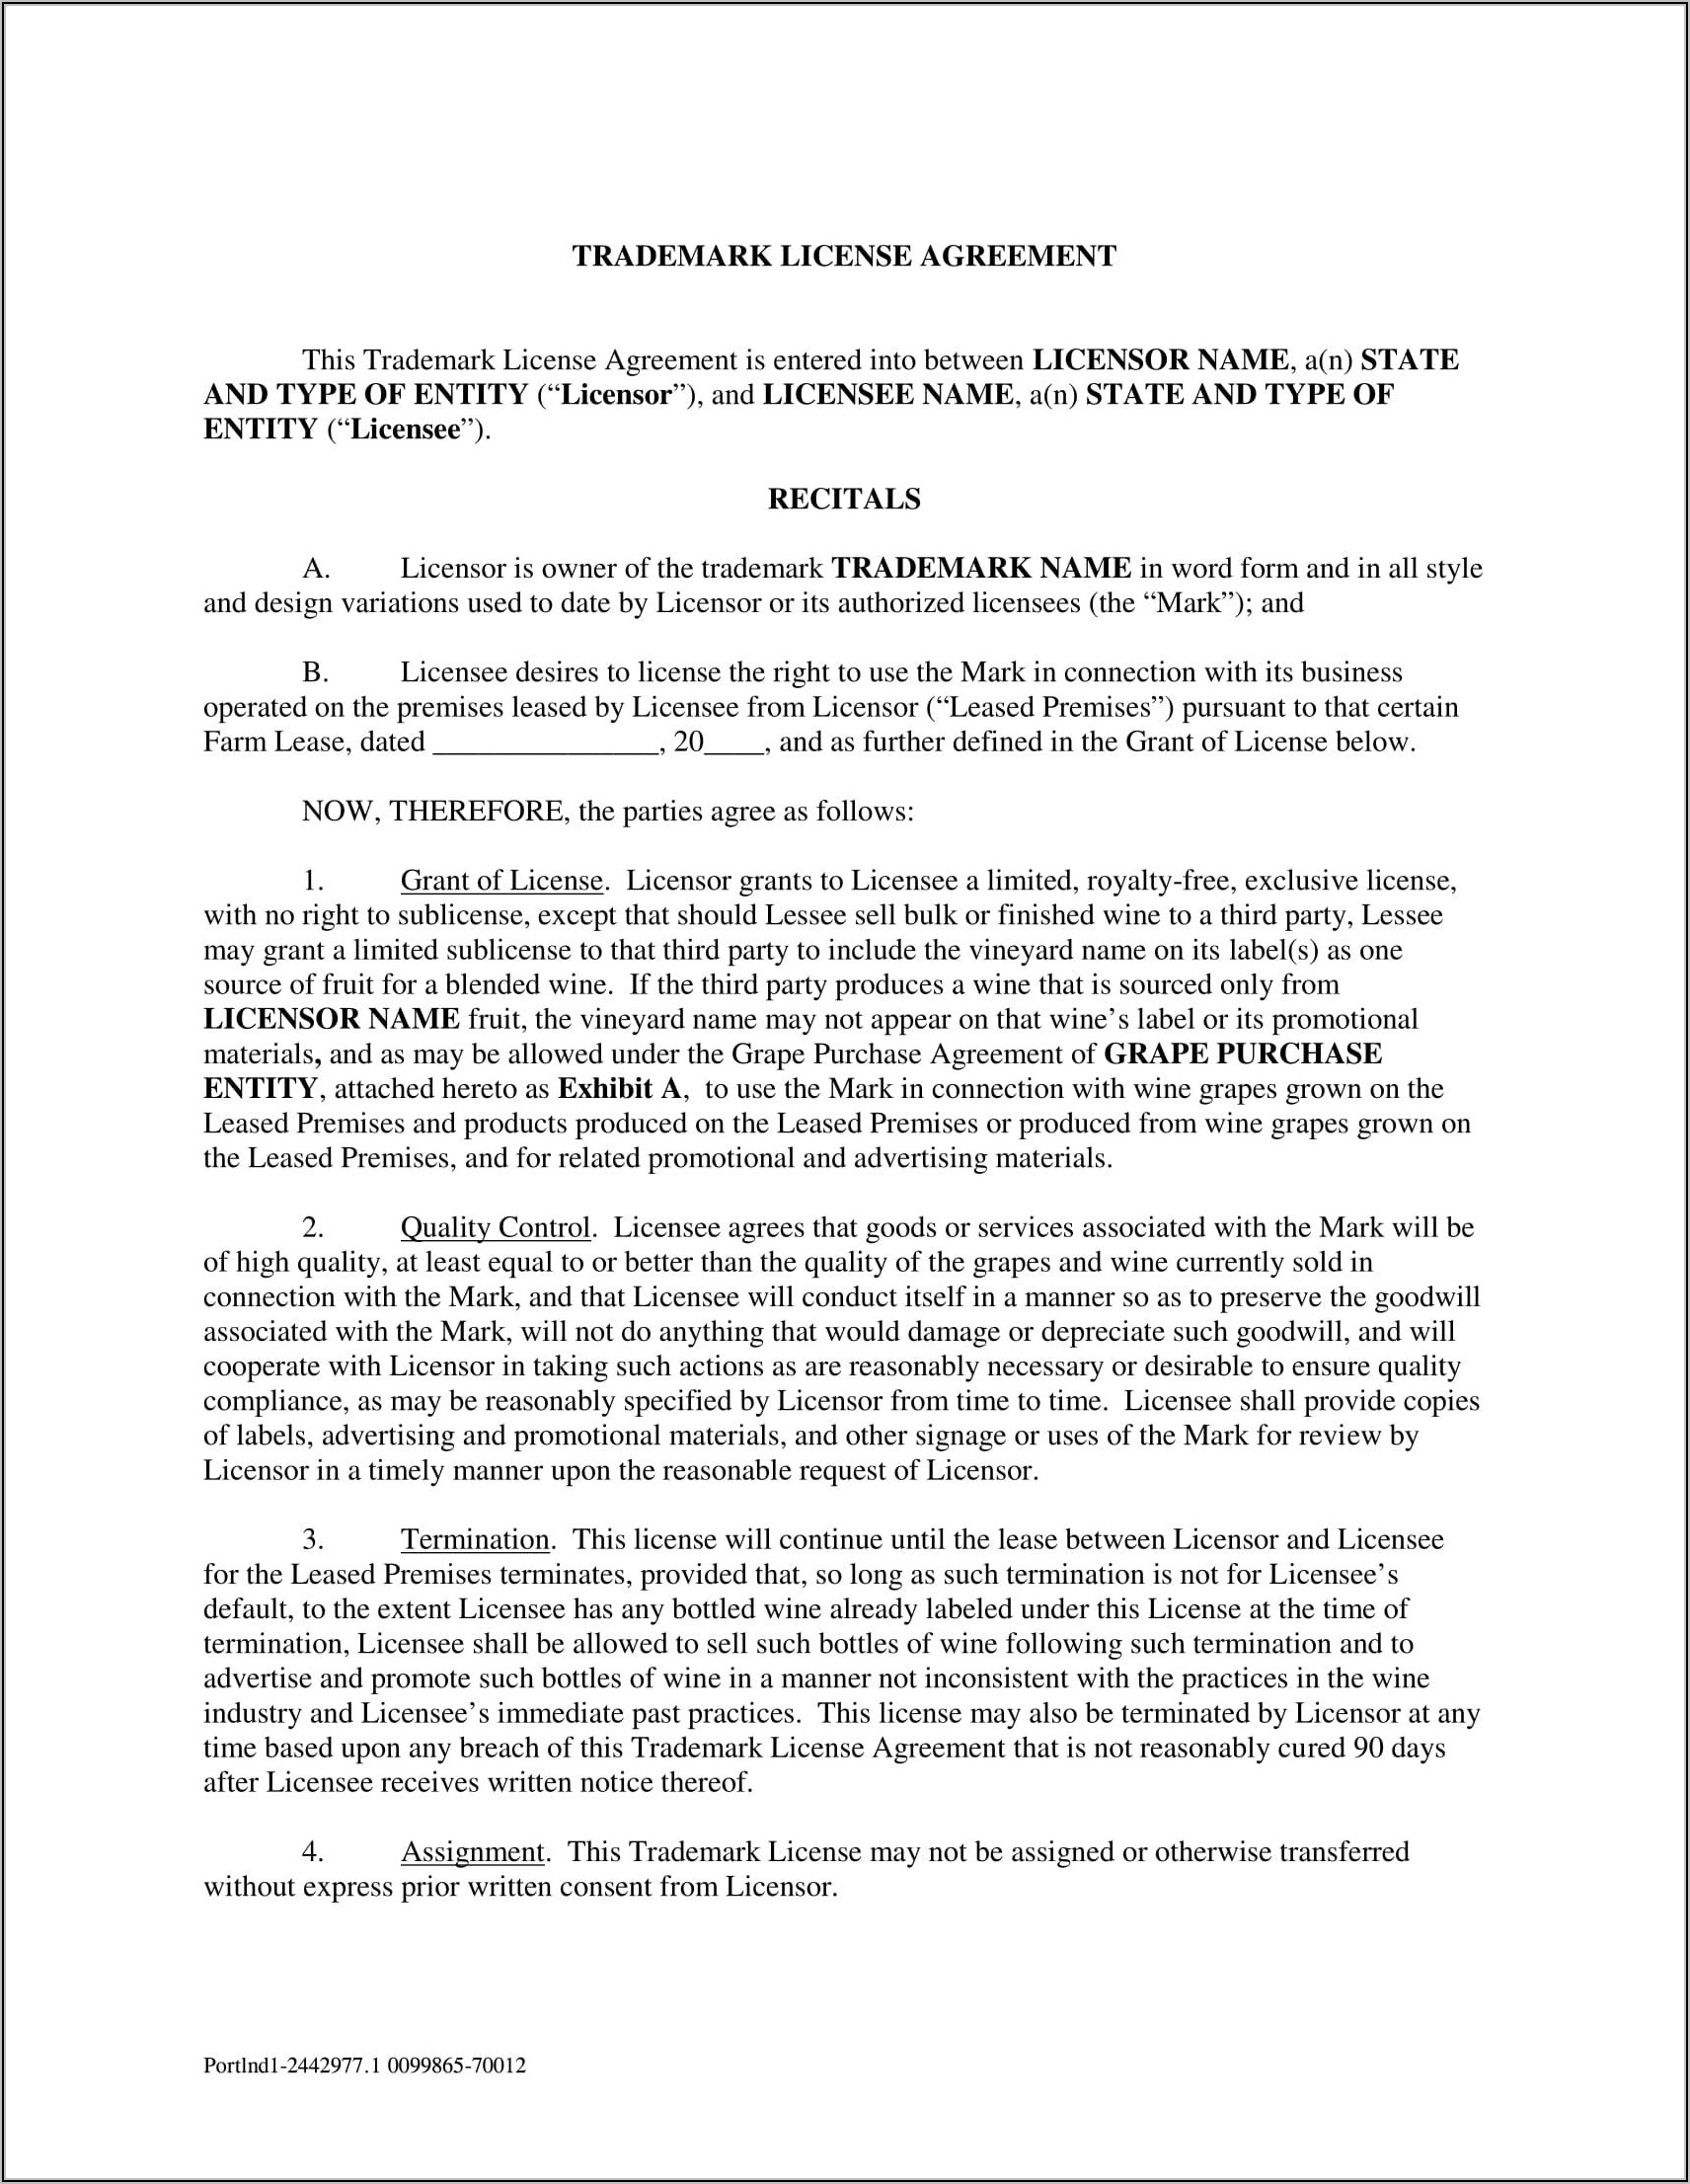 Trademark License Agreement Template India